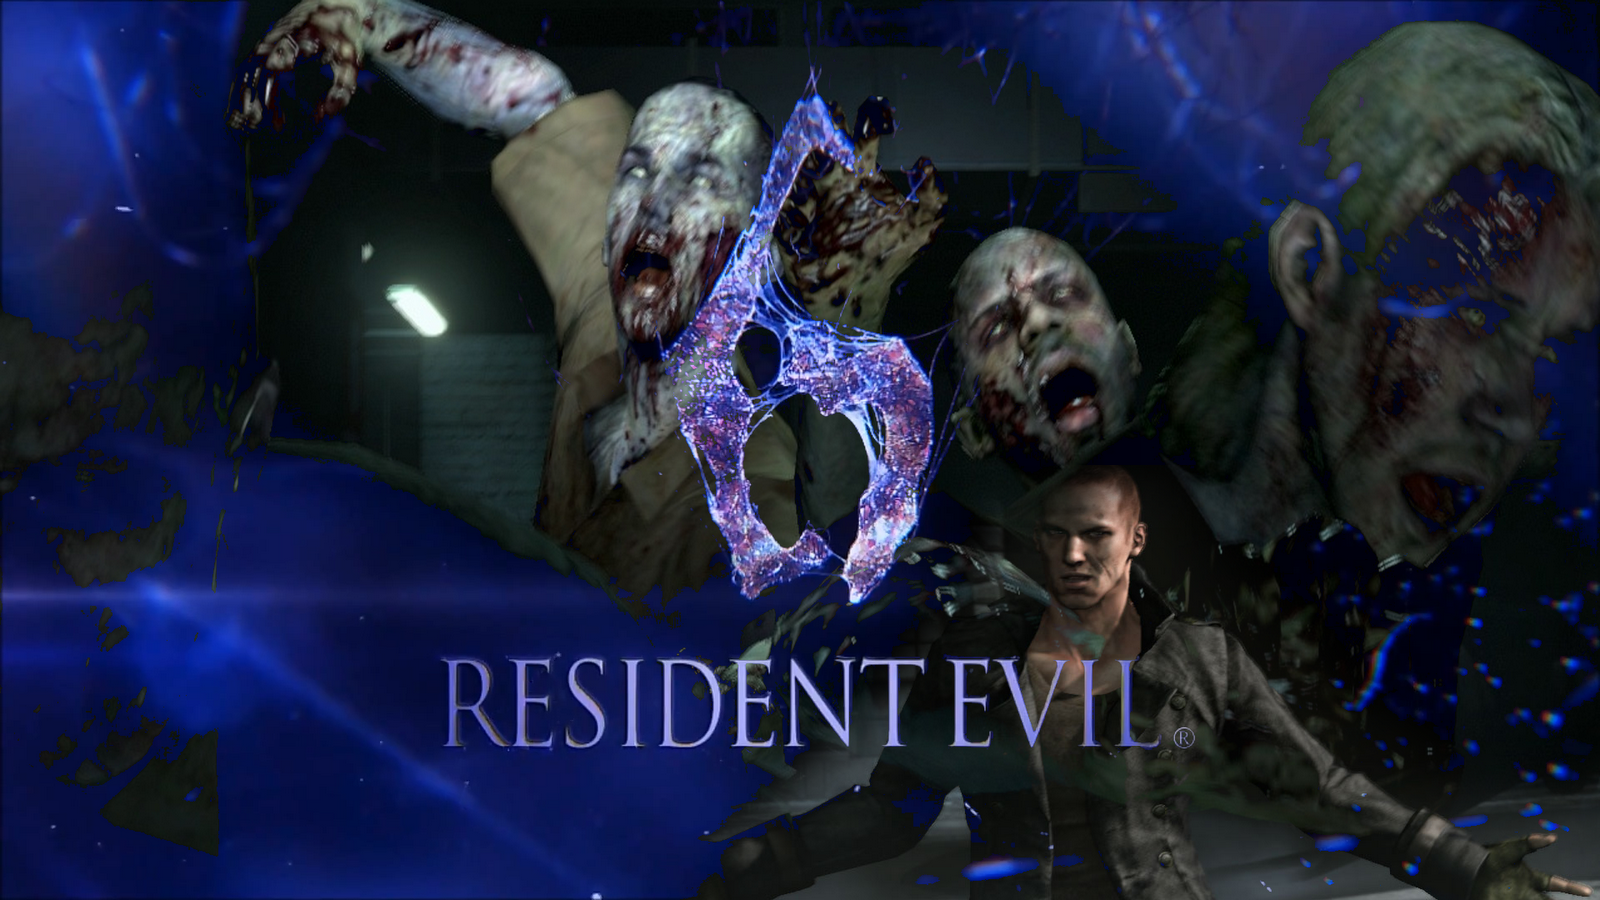 Resident Evil 6 Wallpapers HD HD Wallpapers Backgrounds Photos 1600x900